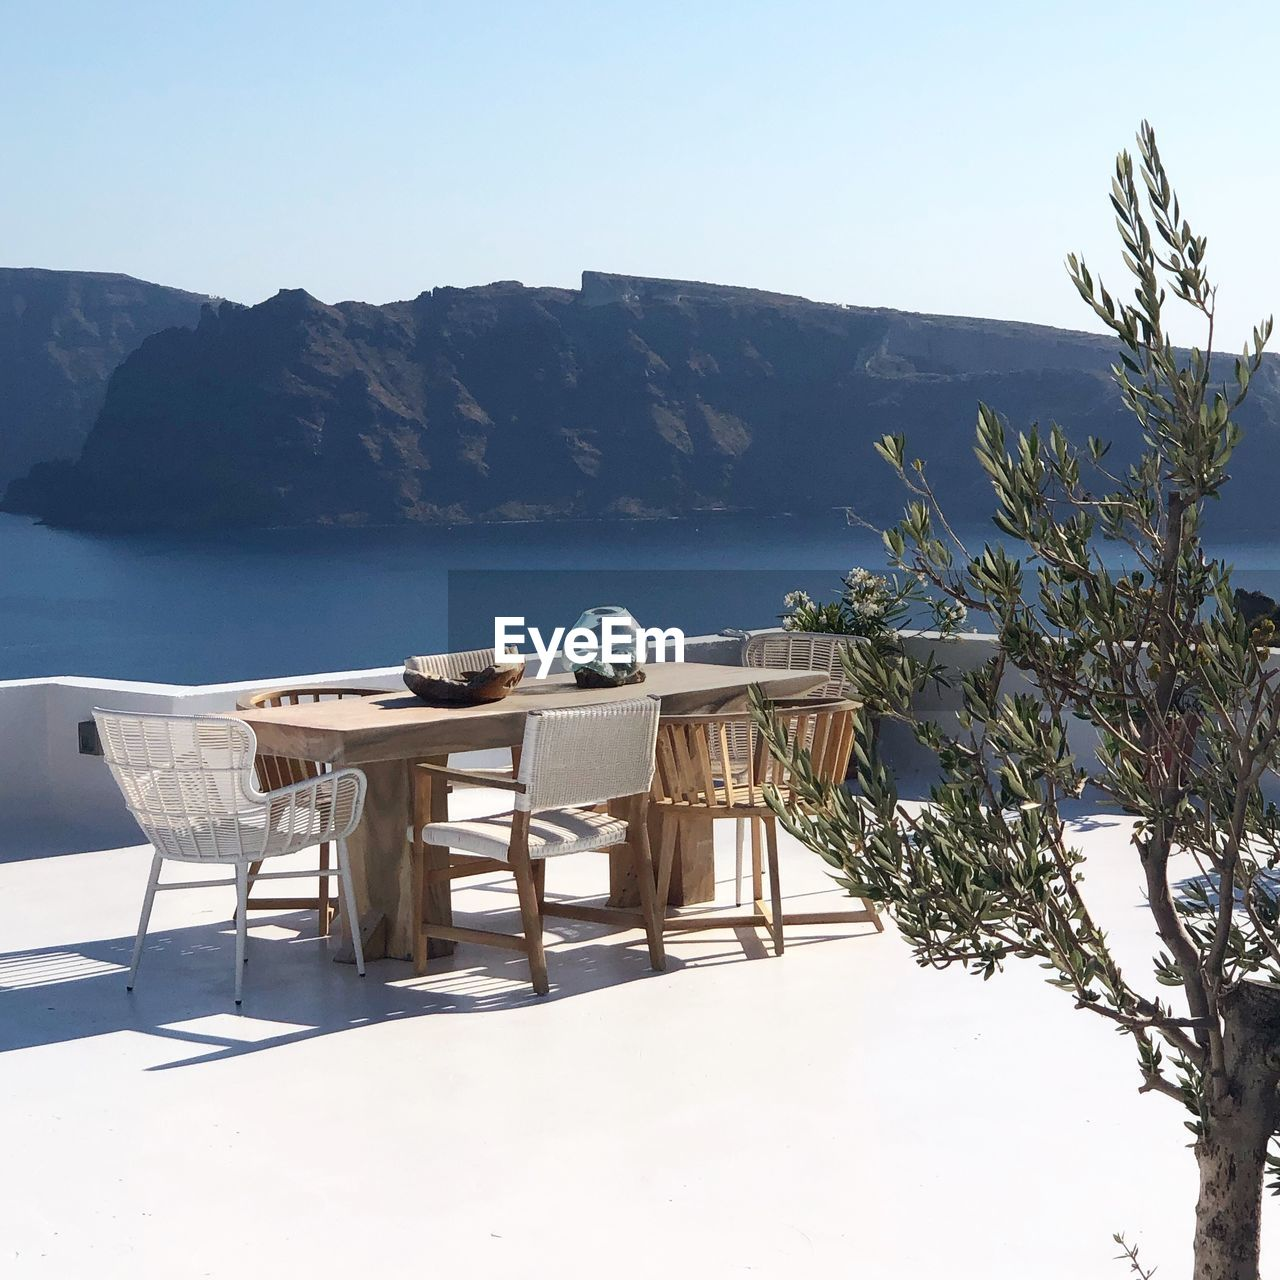 mountain, beauty in nature, nature, sky, chair, scenics - nature, table, sea, water, seat, plant, tranquil scene, tranquility, day, clear sky, no people, sunlight, idyllic, outdoors